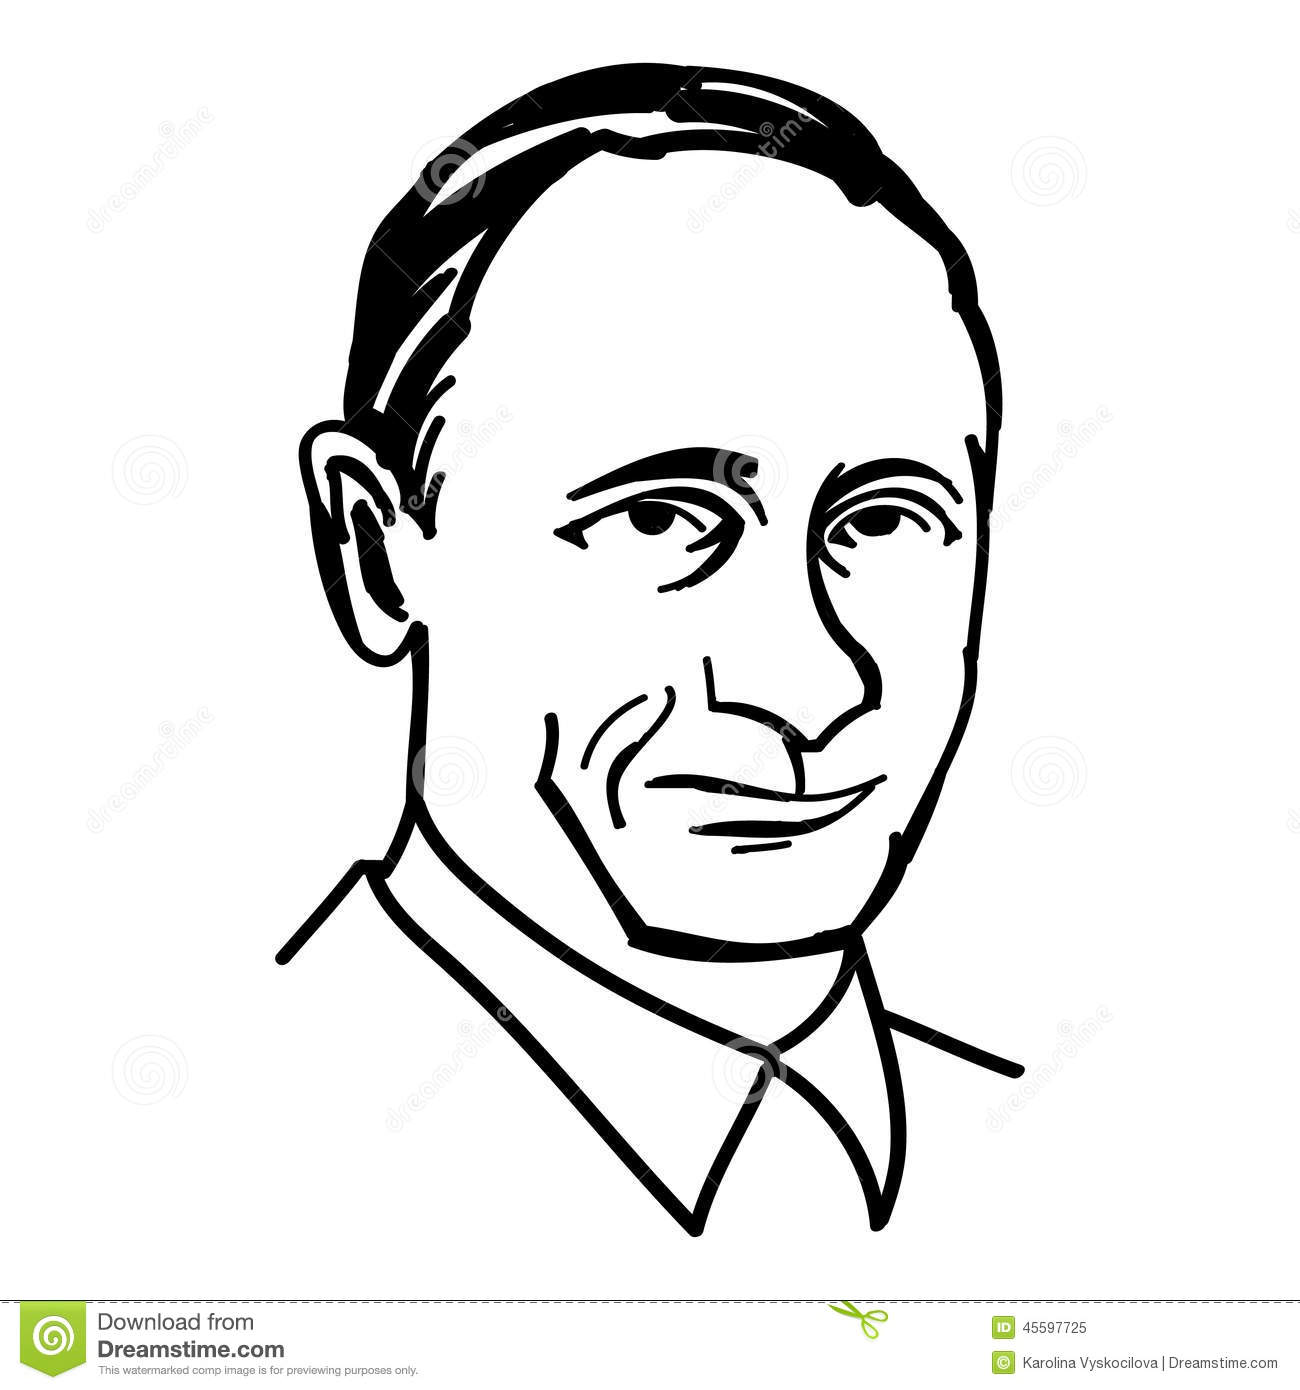 October 1 A Vector Black And White Illustration Of